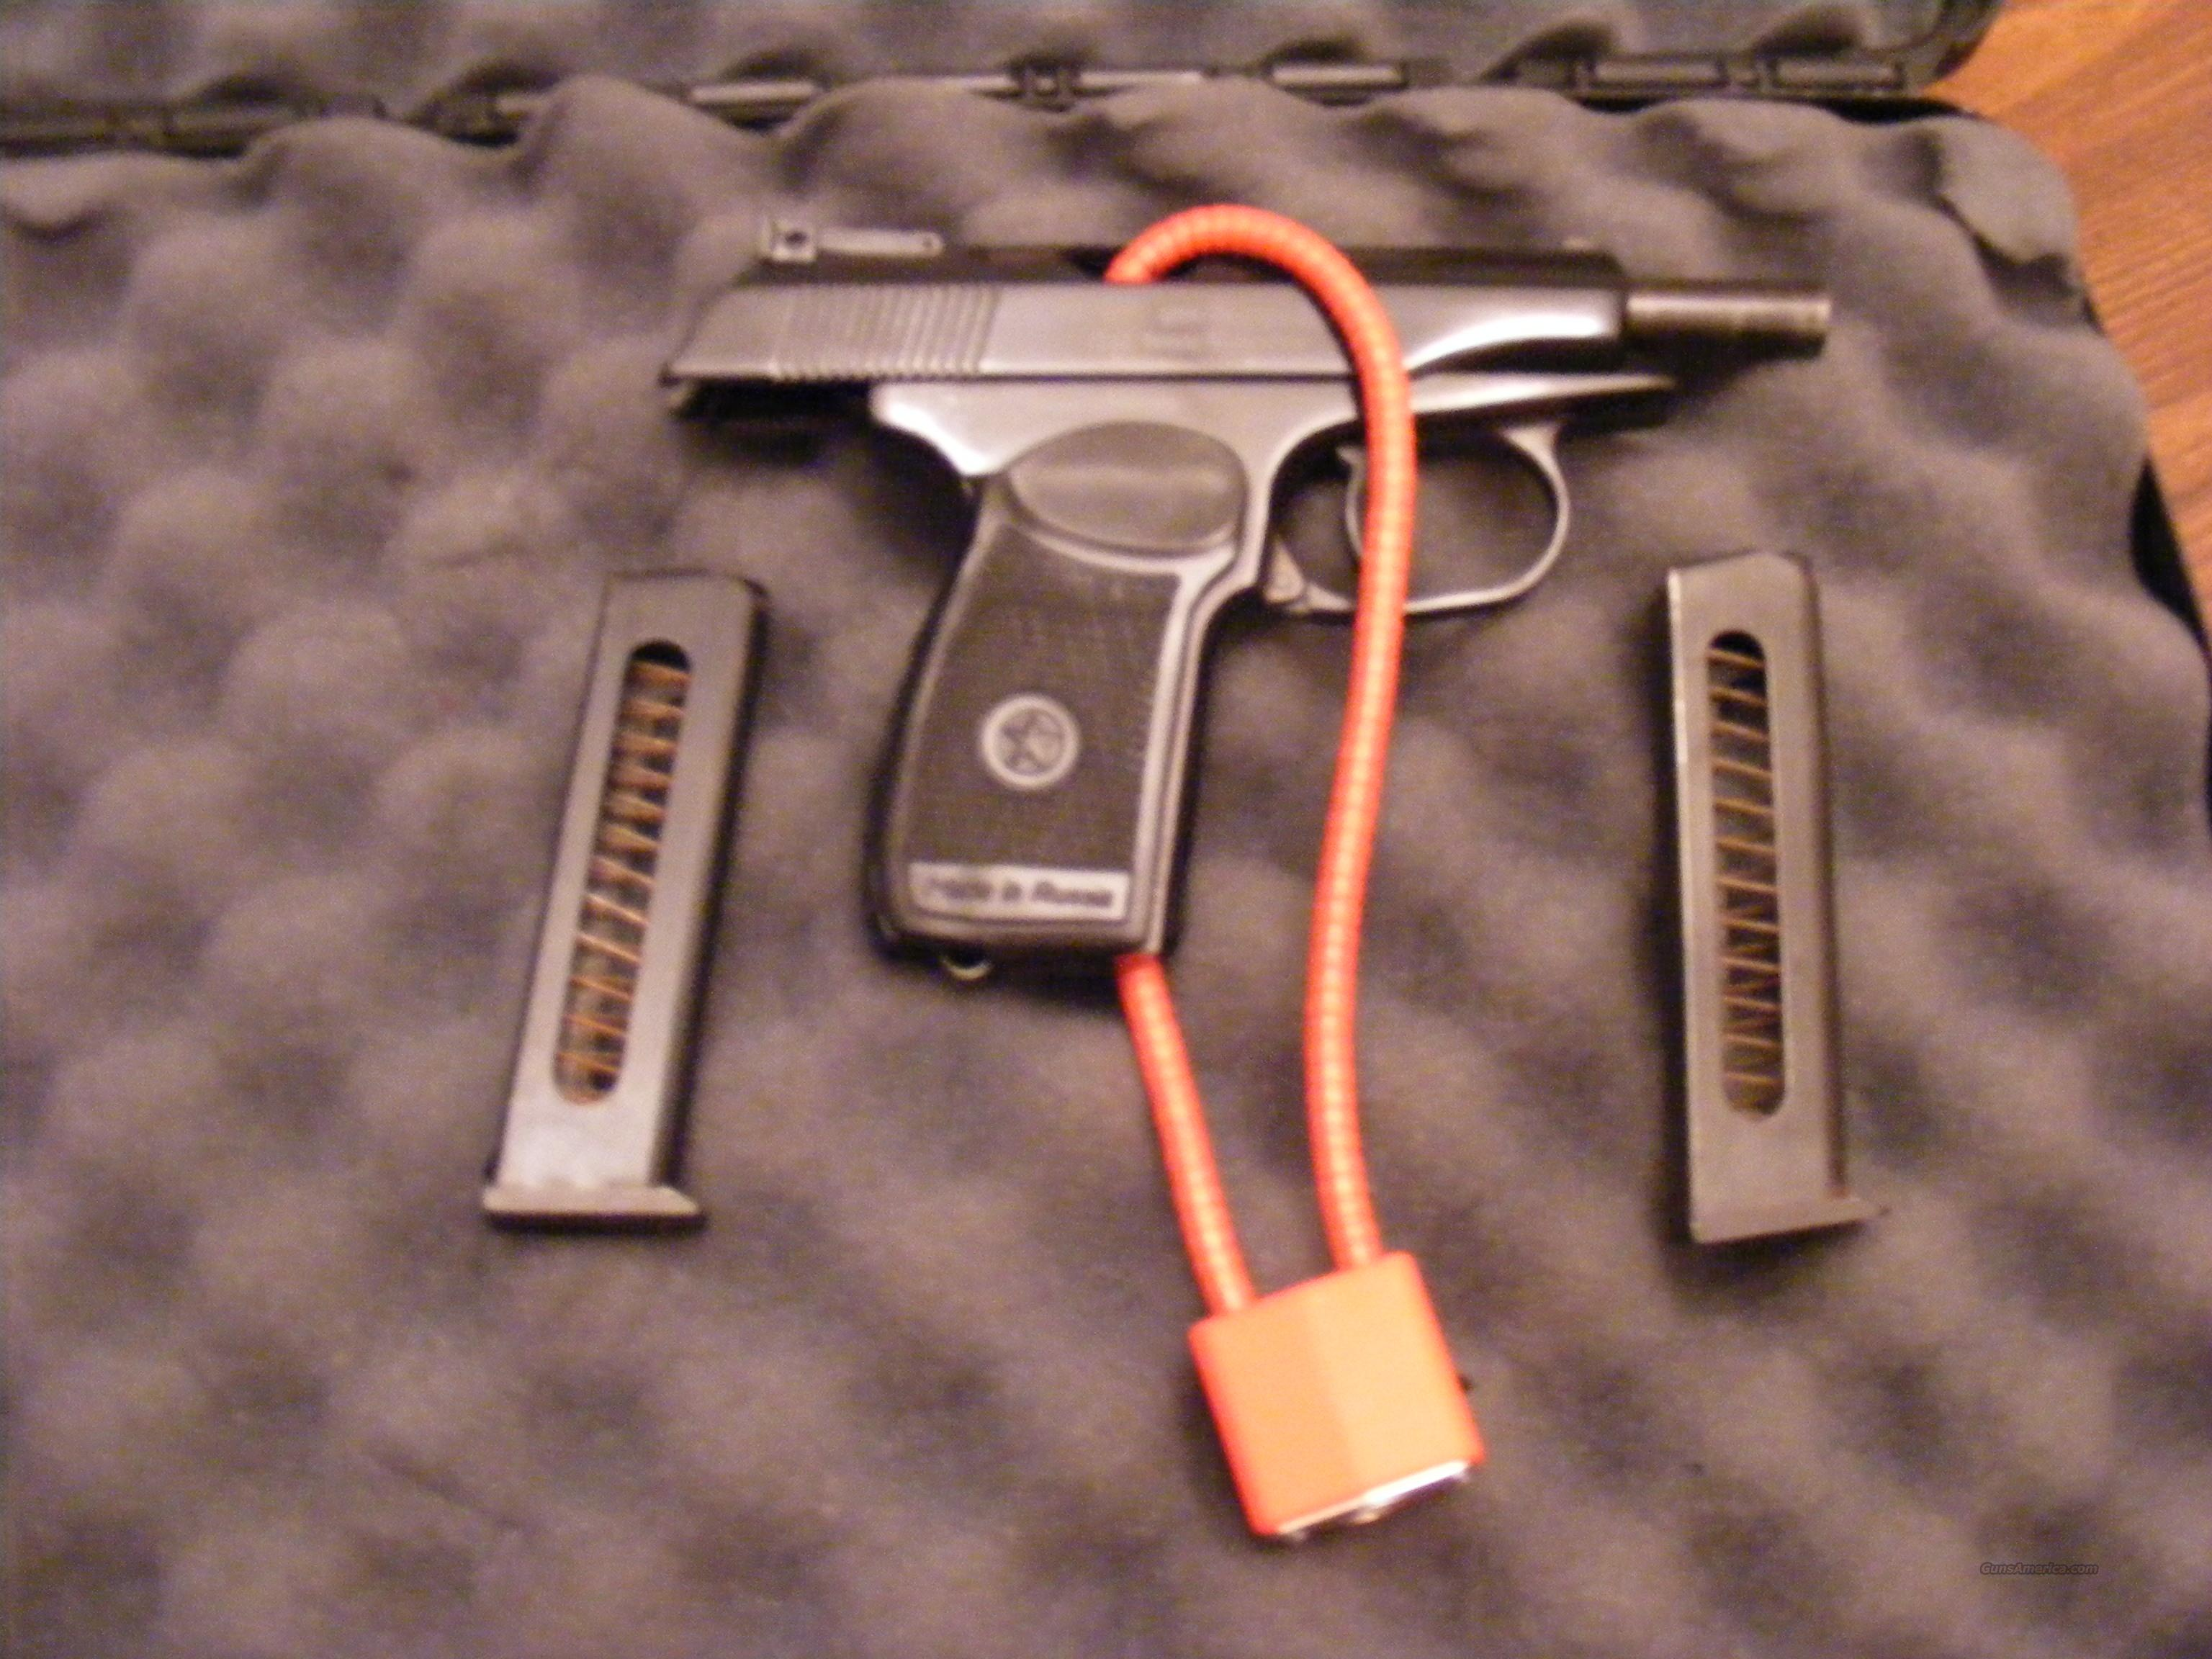 Russian Makarov Pistol  Guns > Pistols > Surplus Pistols & Copies